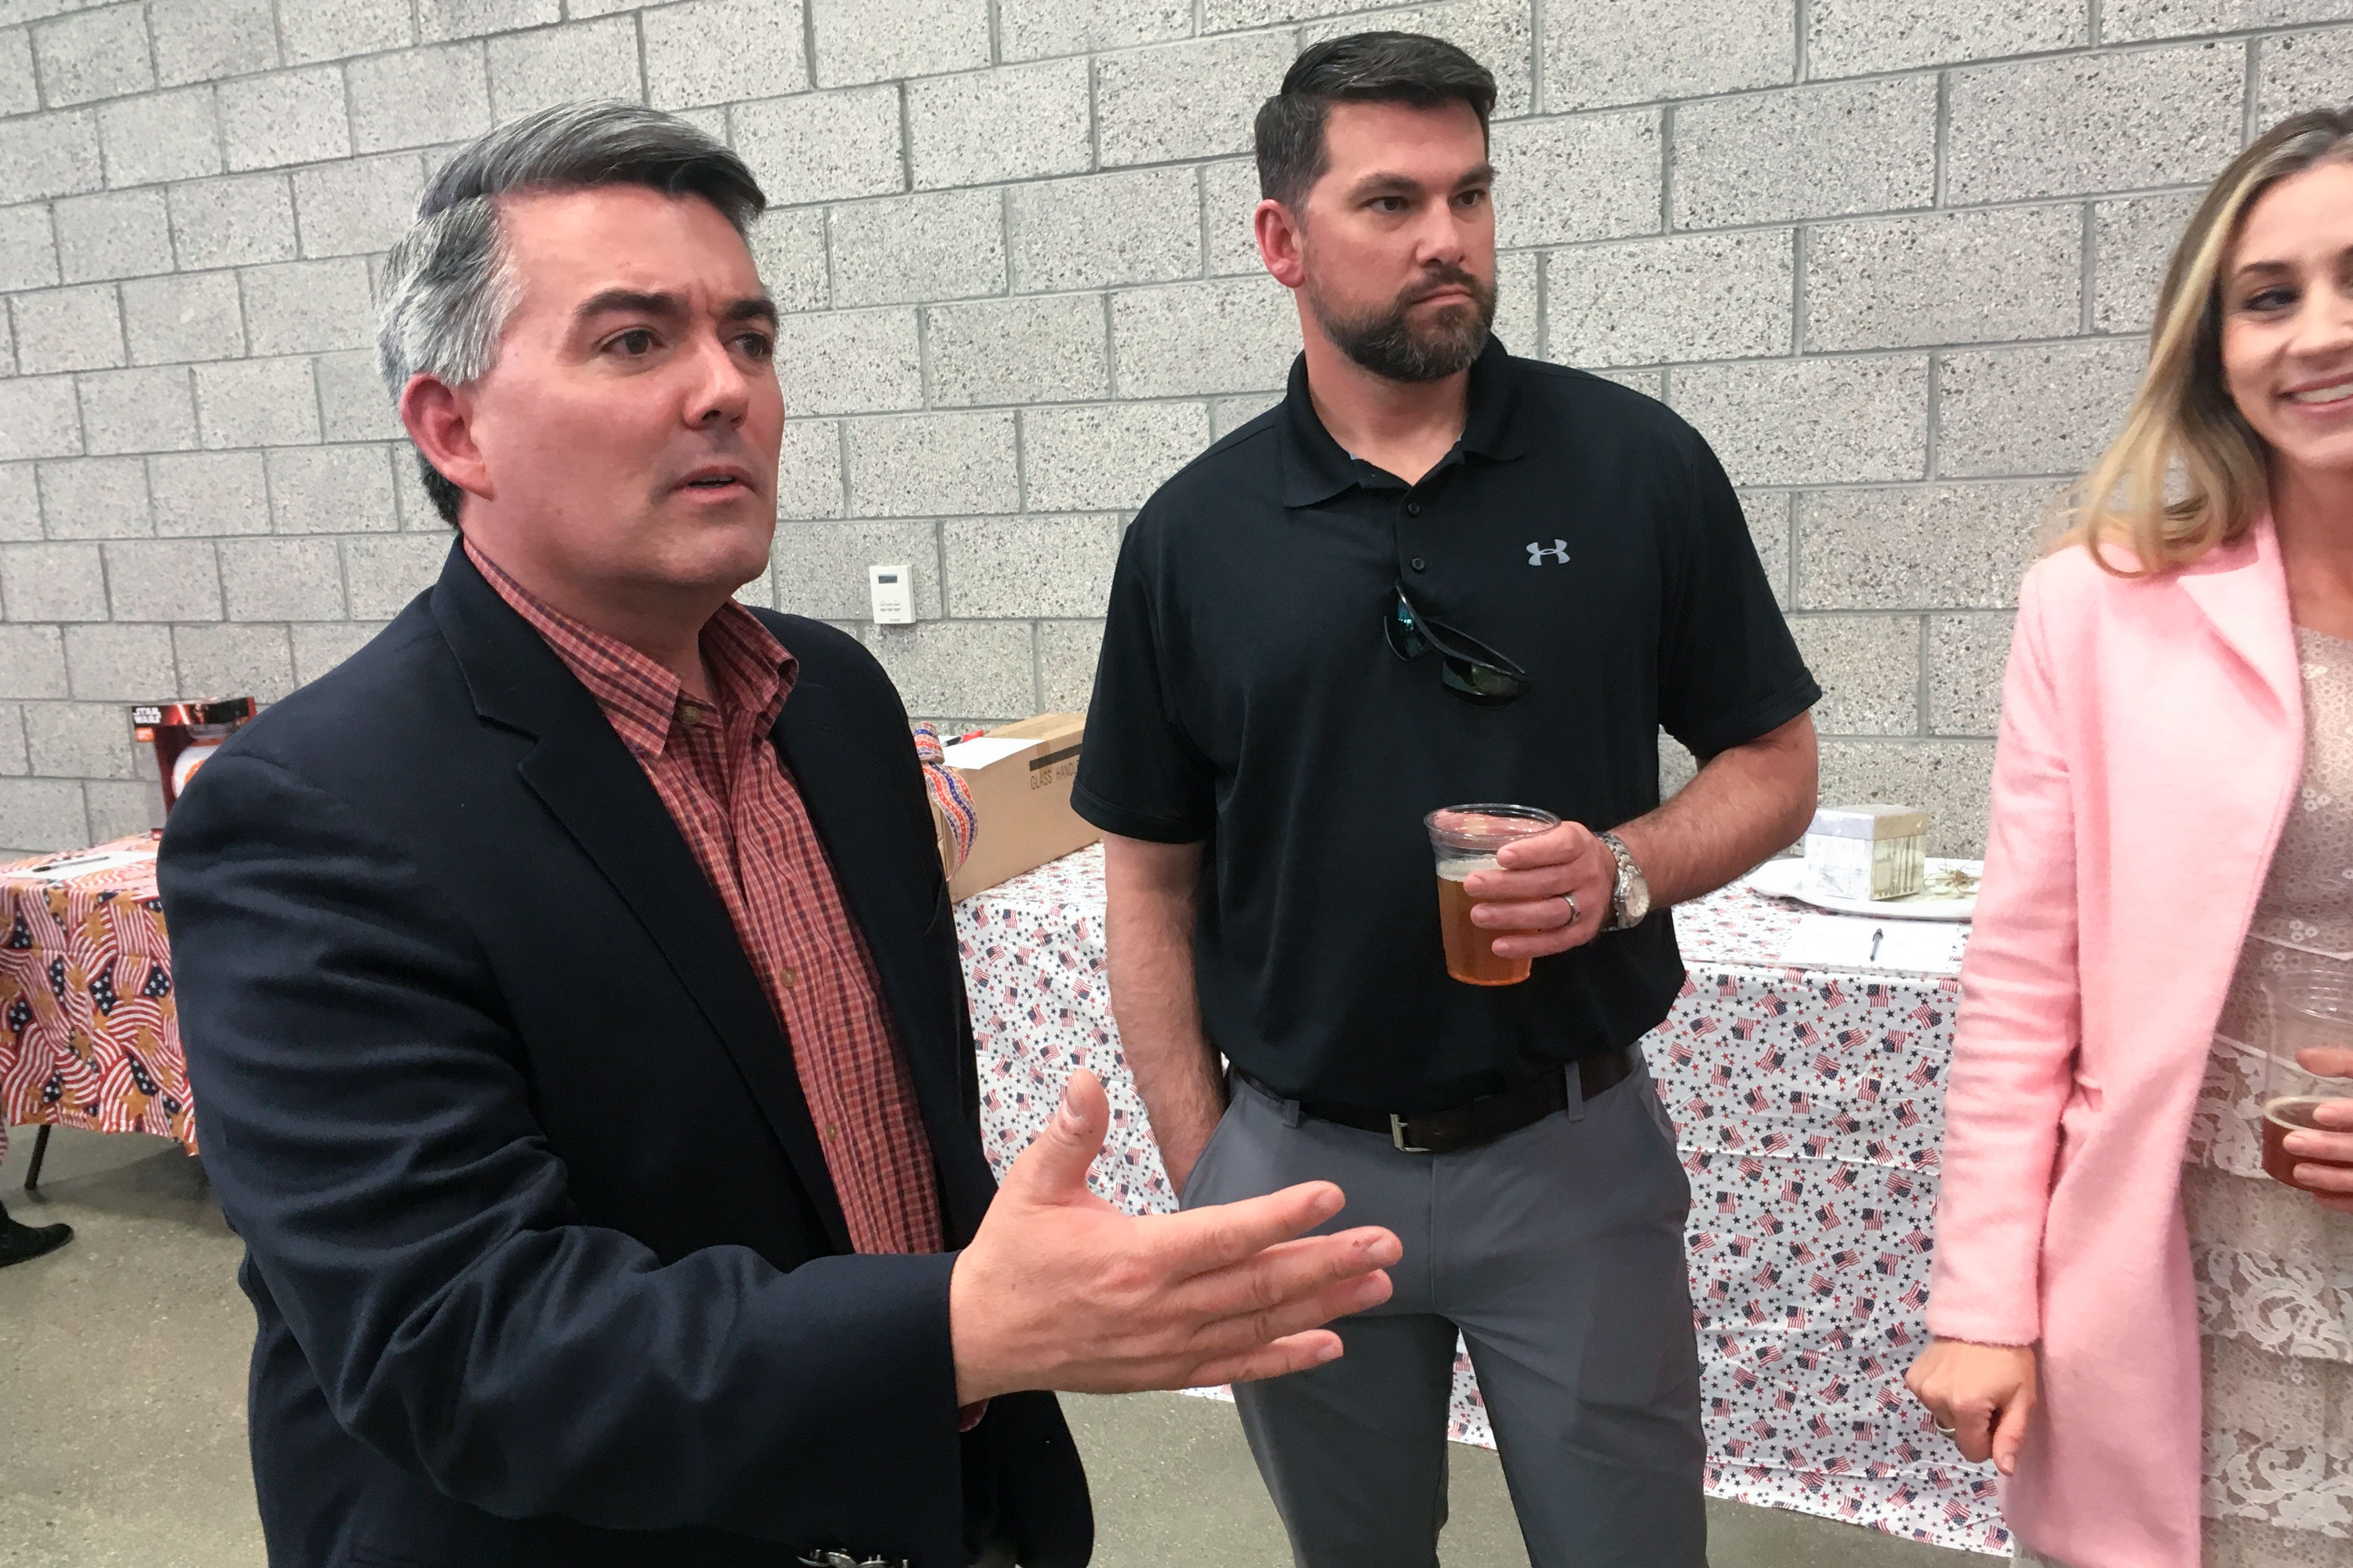 Photo: Election 2020 Campaigning | Cory Gardner Alamosa Lincoln Day Dinner - AP